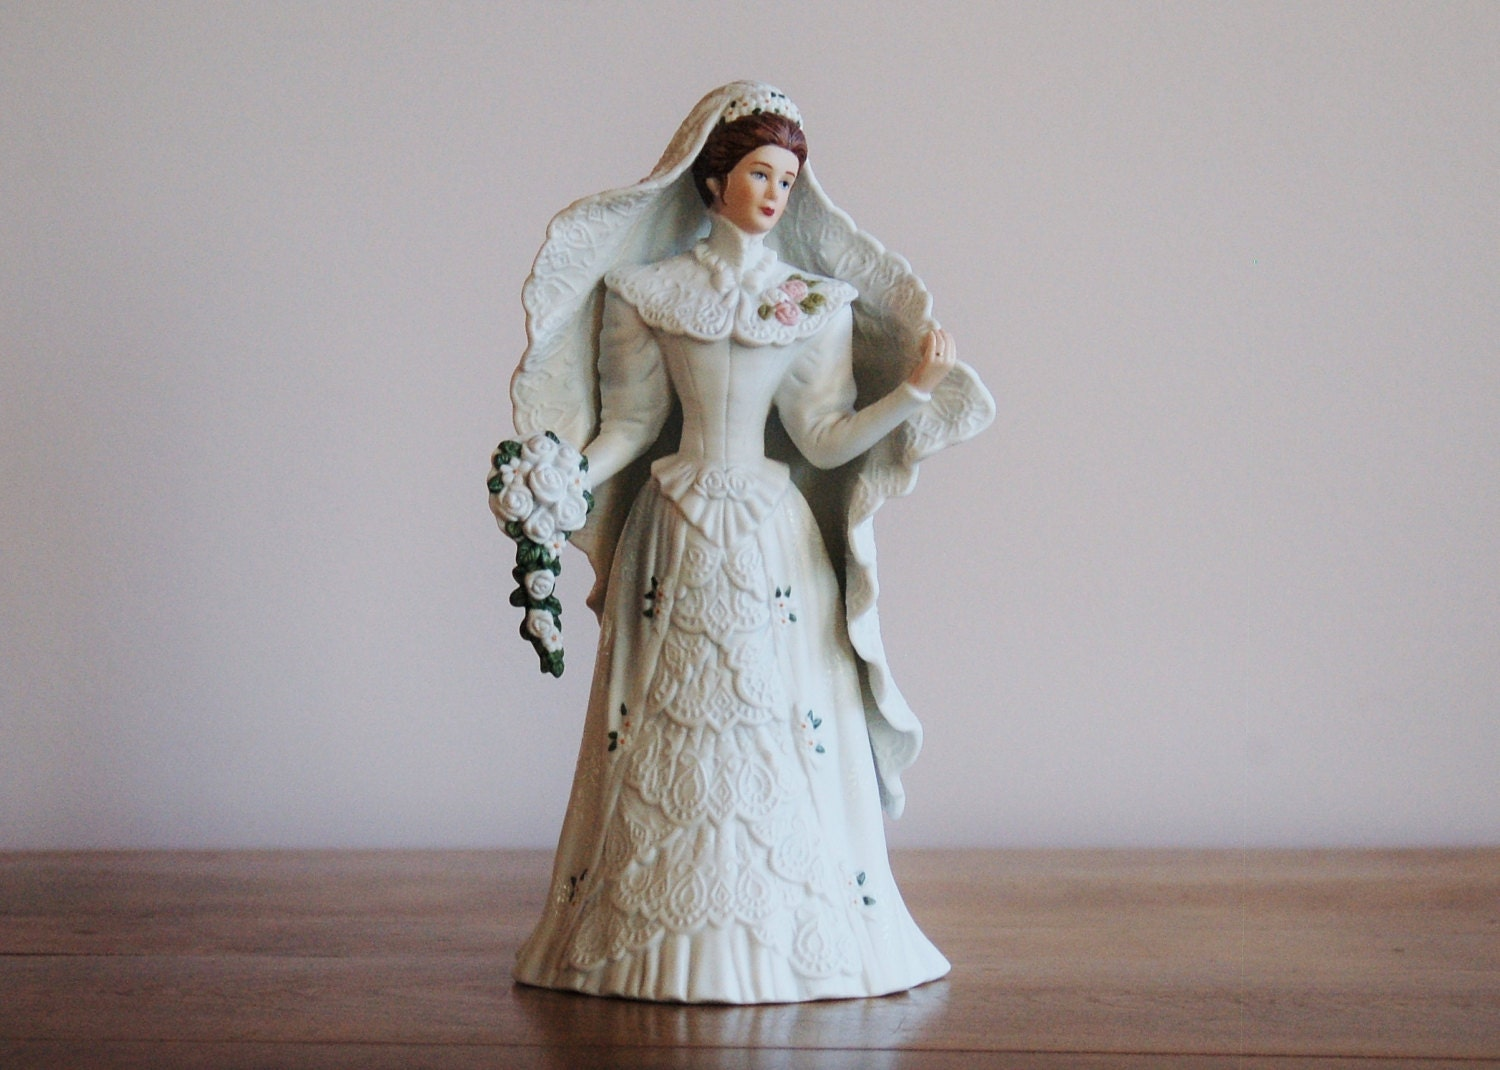 Lenox Wedding Gifts: Lenox Centennial Bride Figurine Lenox By CobblestonesVintage